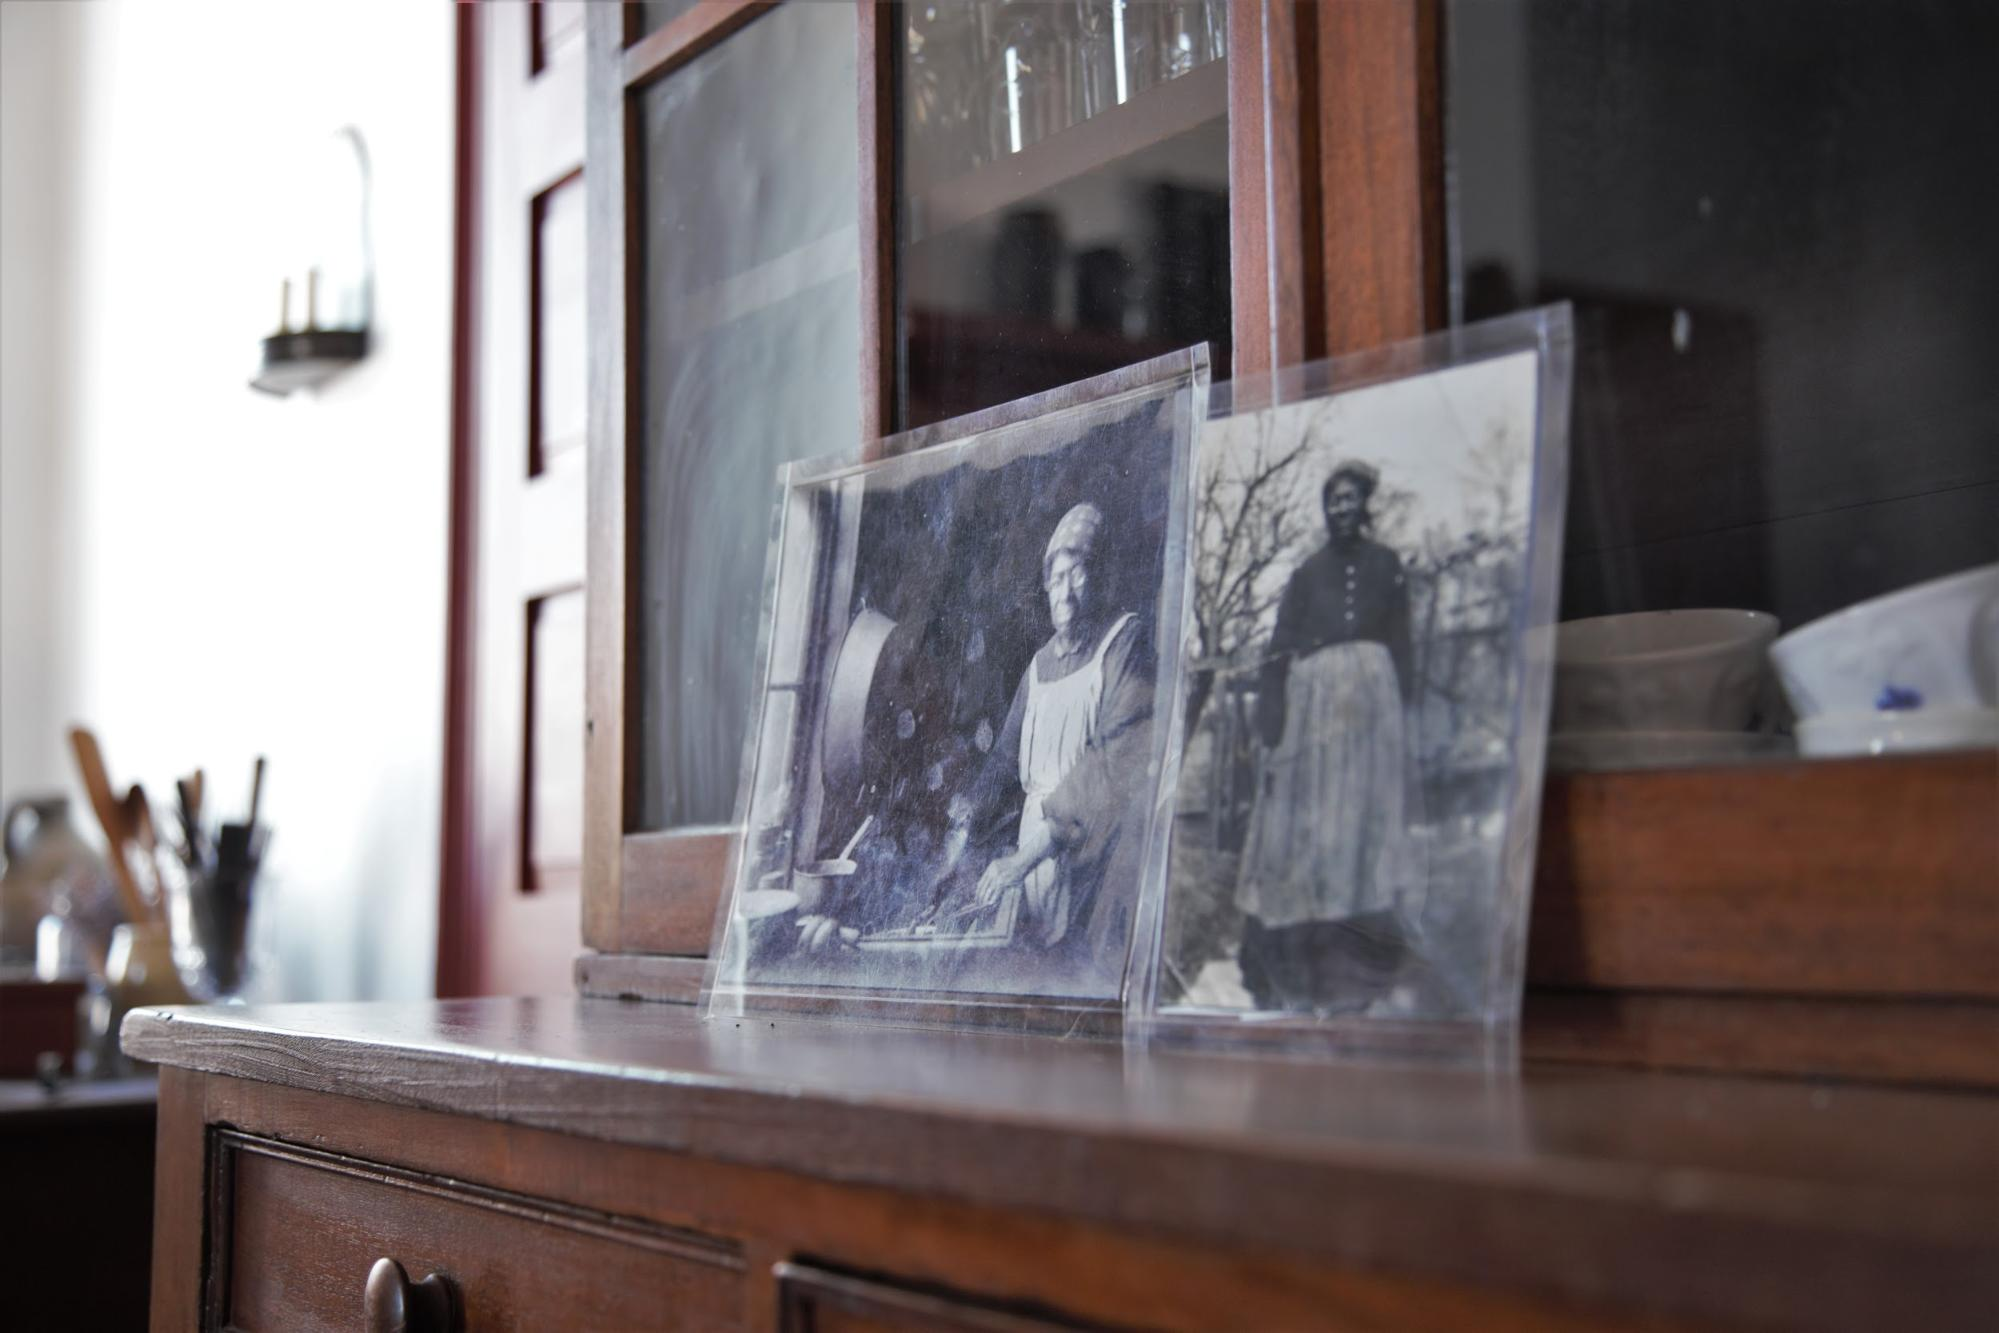 historic black and white pictures sitting on a china cabinet depicting African American woman